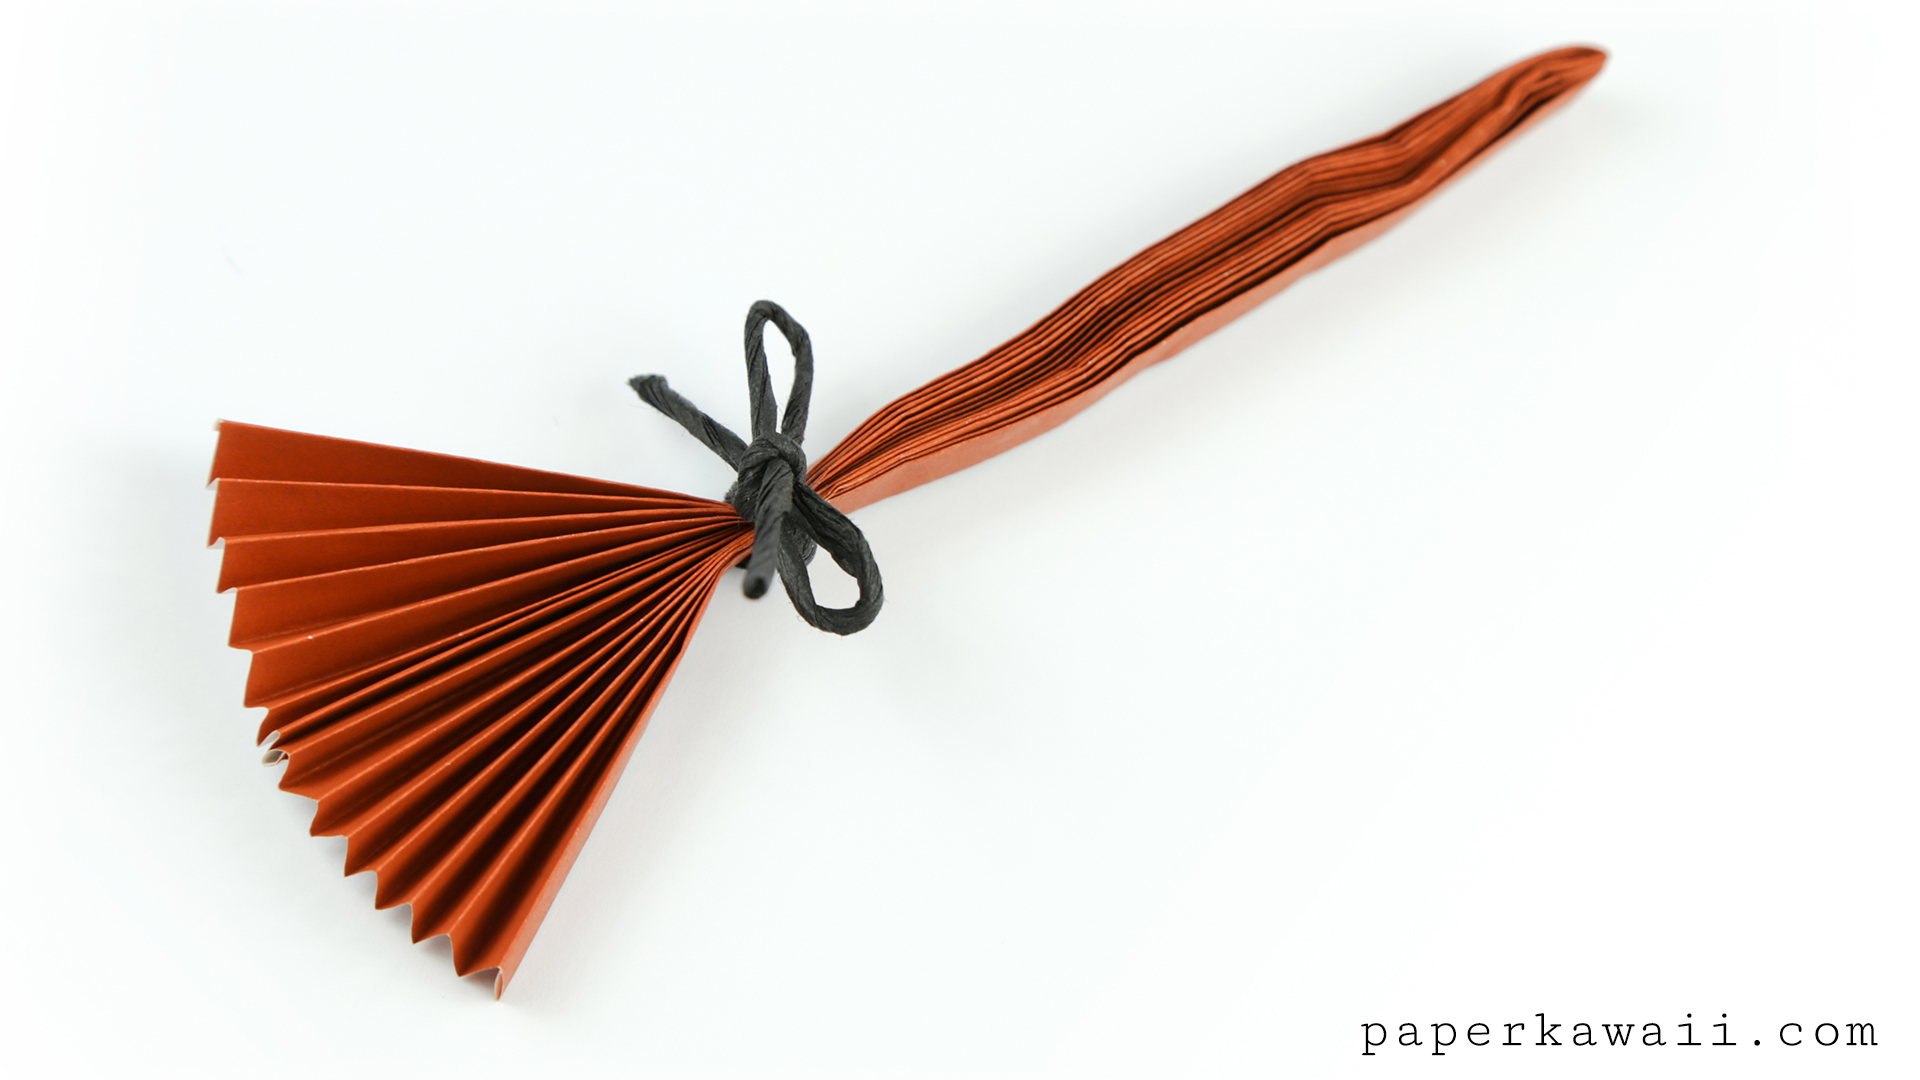 Mini Origami Diagrams Electrical Wiring Diagram Advanced Easy Broomstick Tutorial For Halloween Paper Kawaii